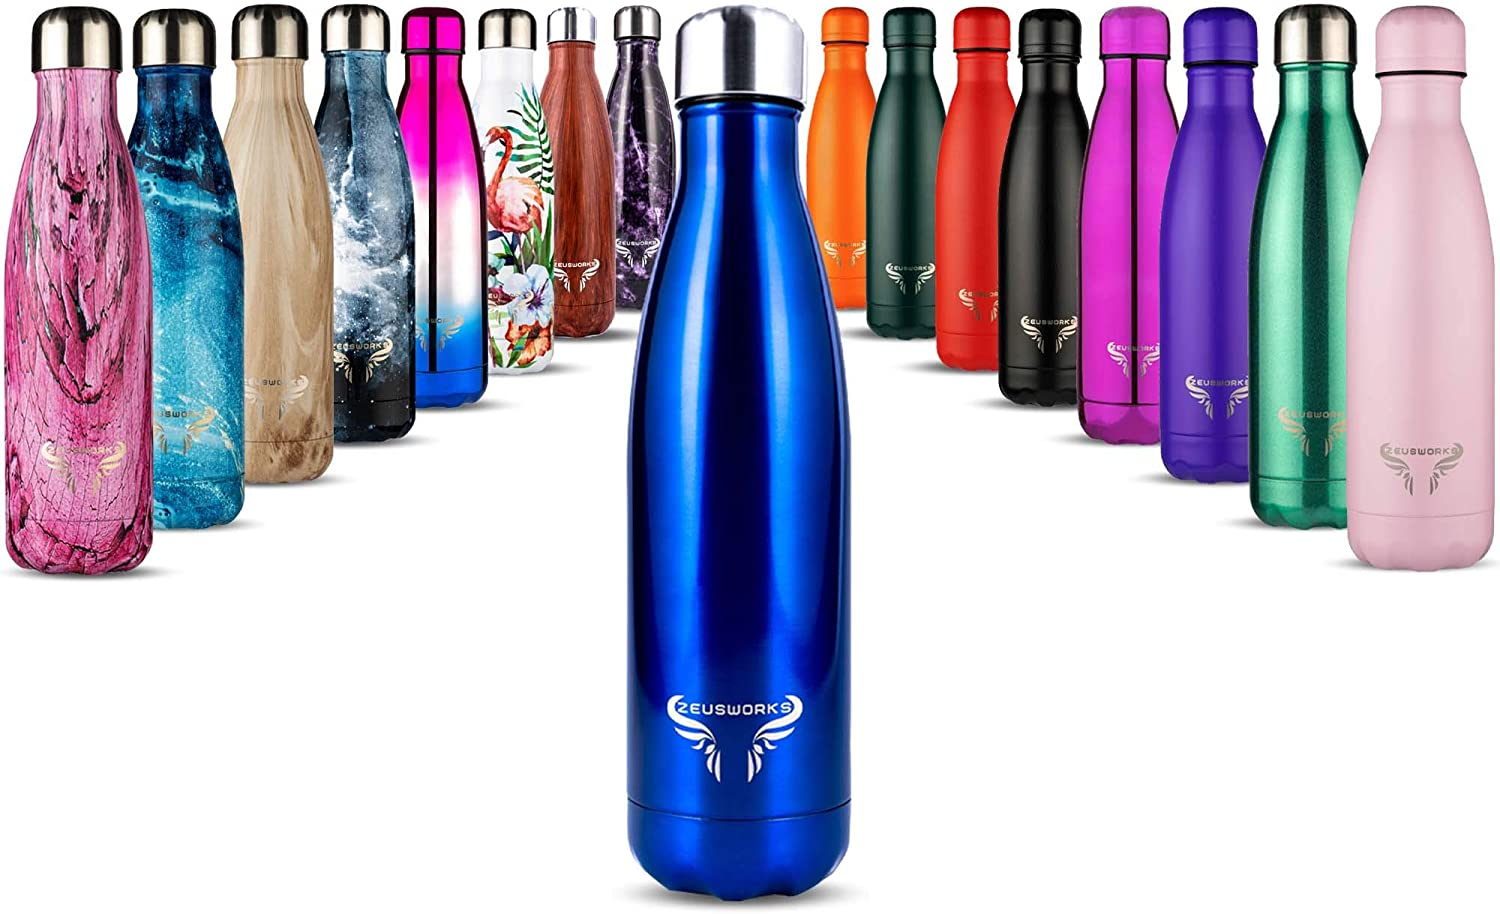 No Sweating Insulated Bottle Gym Hot for 12 Hrs Double Walled Reusable 500ml Bottles Leakproof Metal Water Bottle for Kids Travel Sports Keeps Cold for 24+ Hrs Zeusworks Stainless Steel Water Bottle BPA Free Vacuum Flask